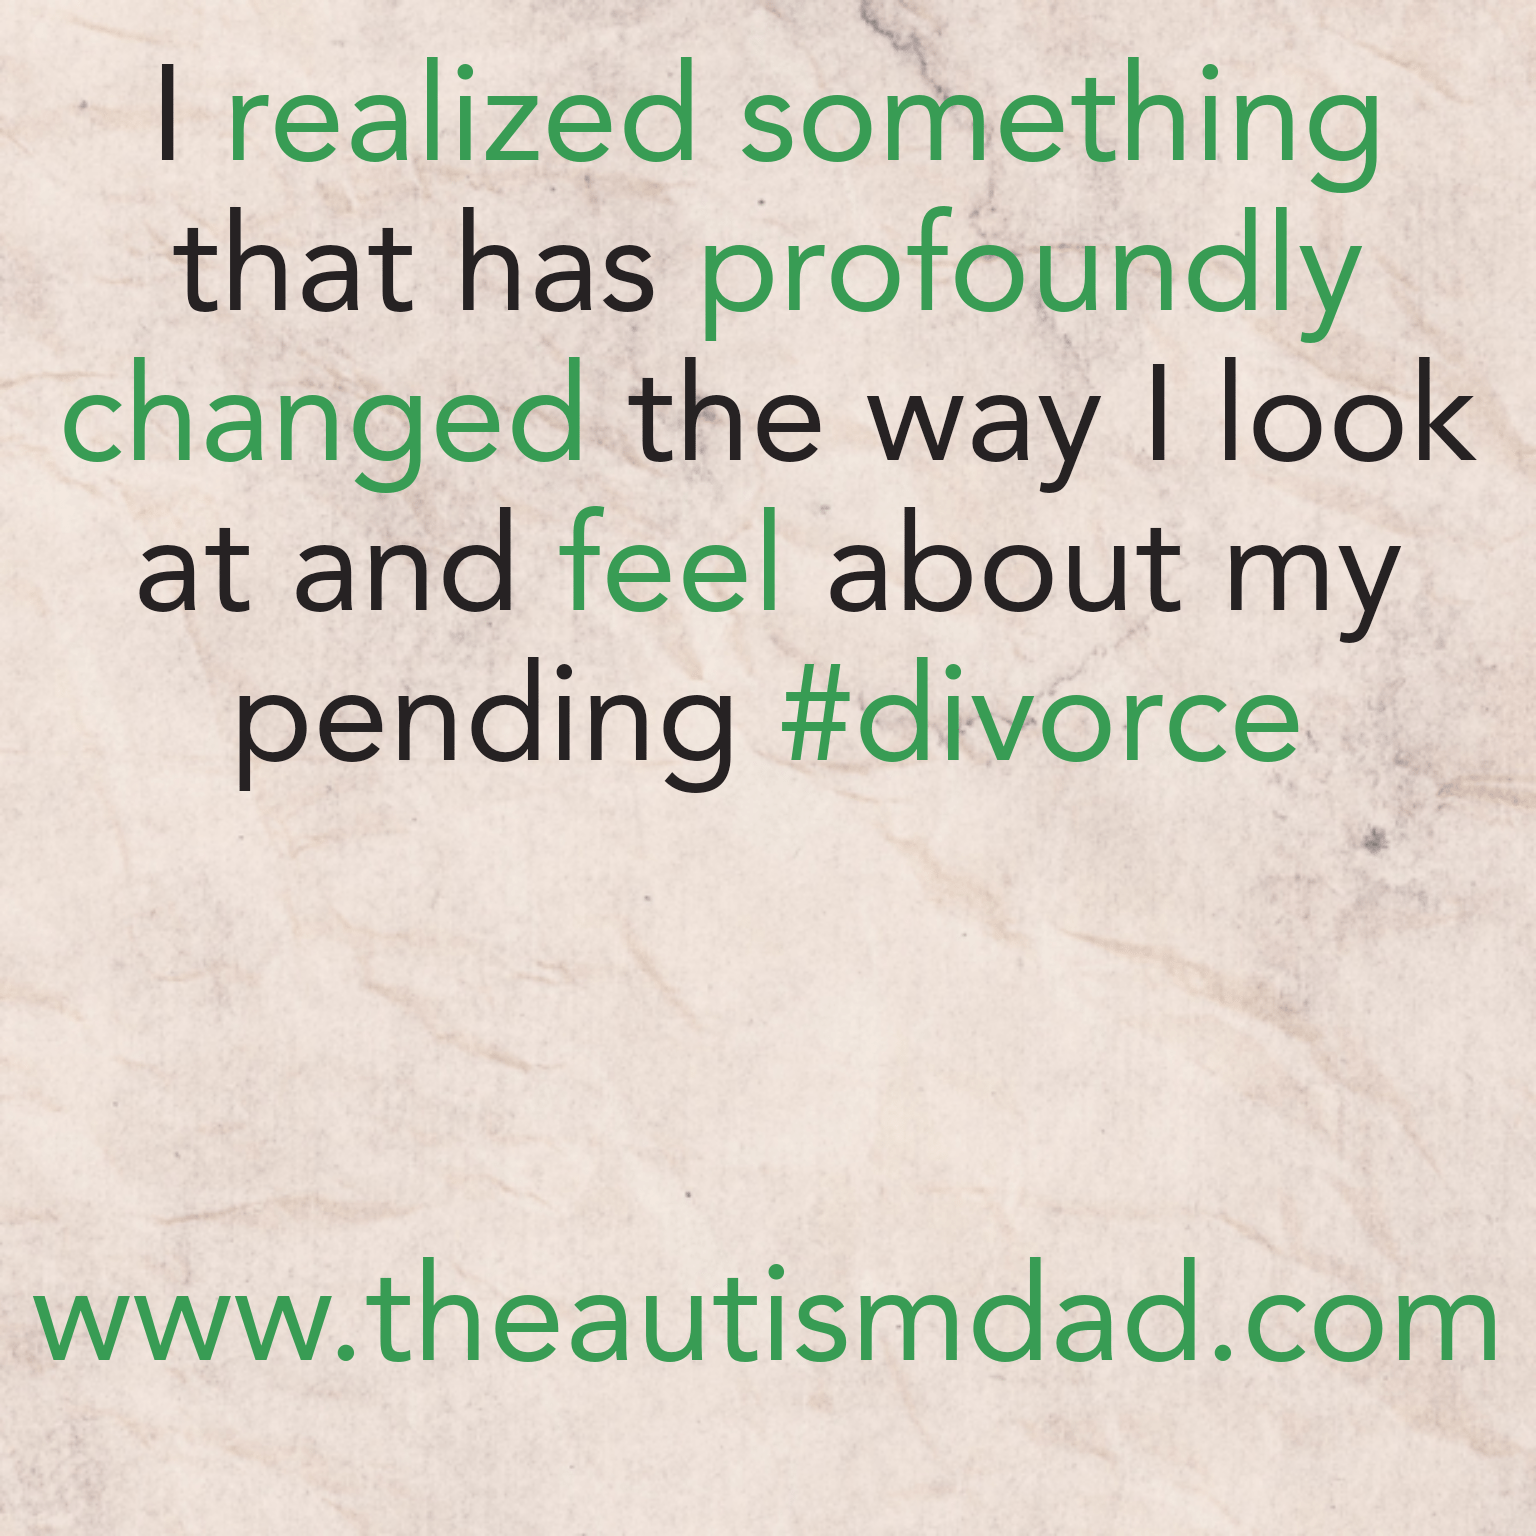 I realized something that has profoundly changed the way I look at and feel about my pending #divorce